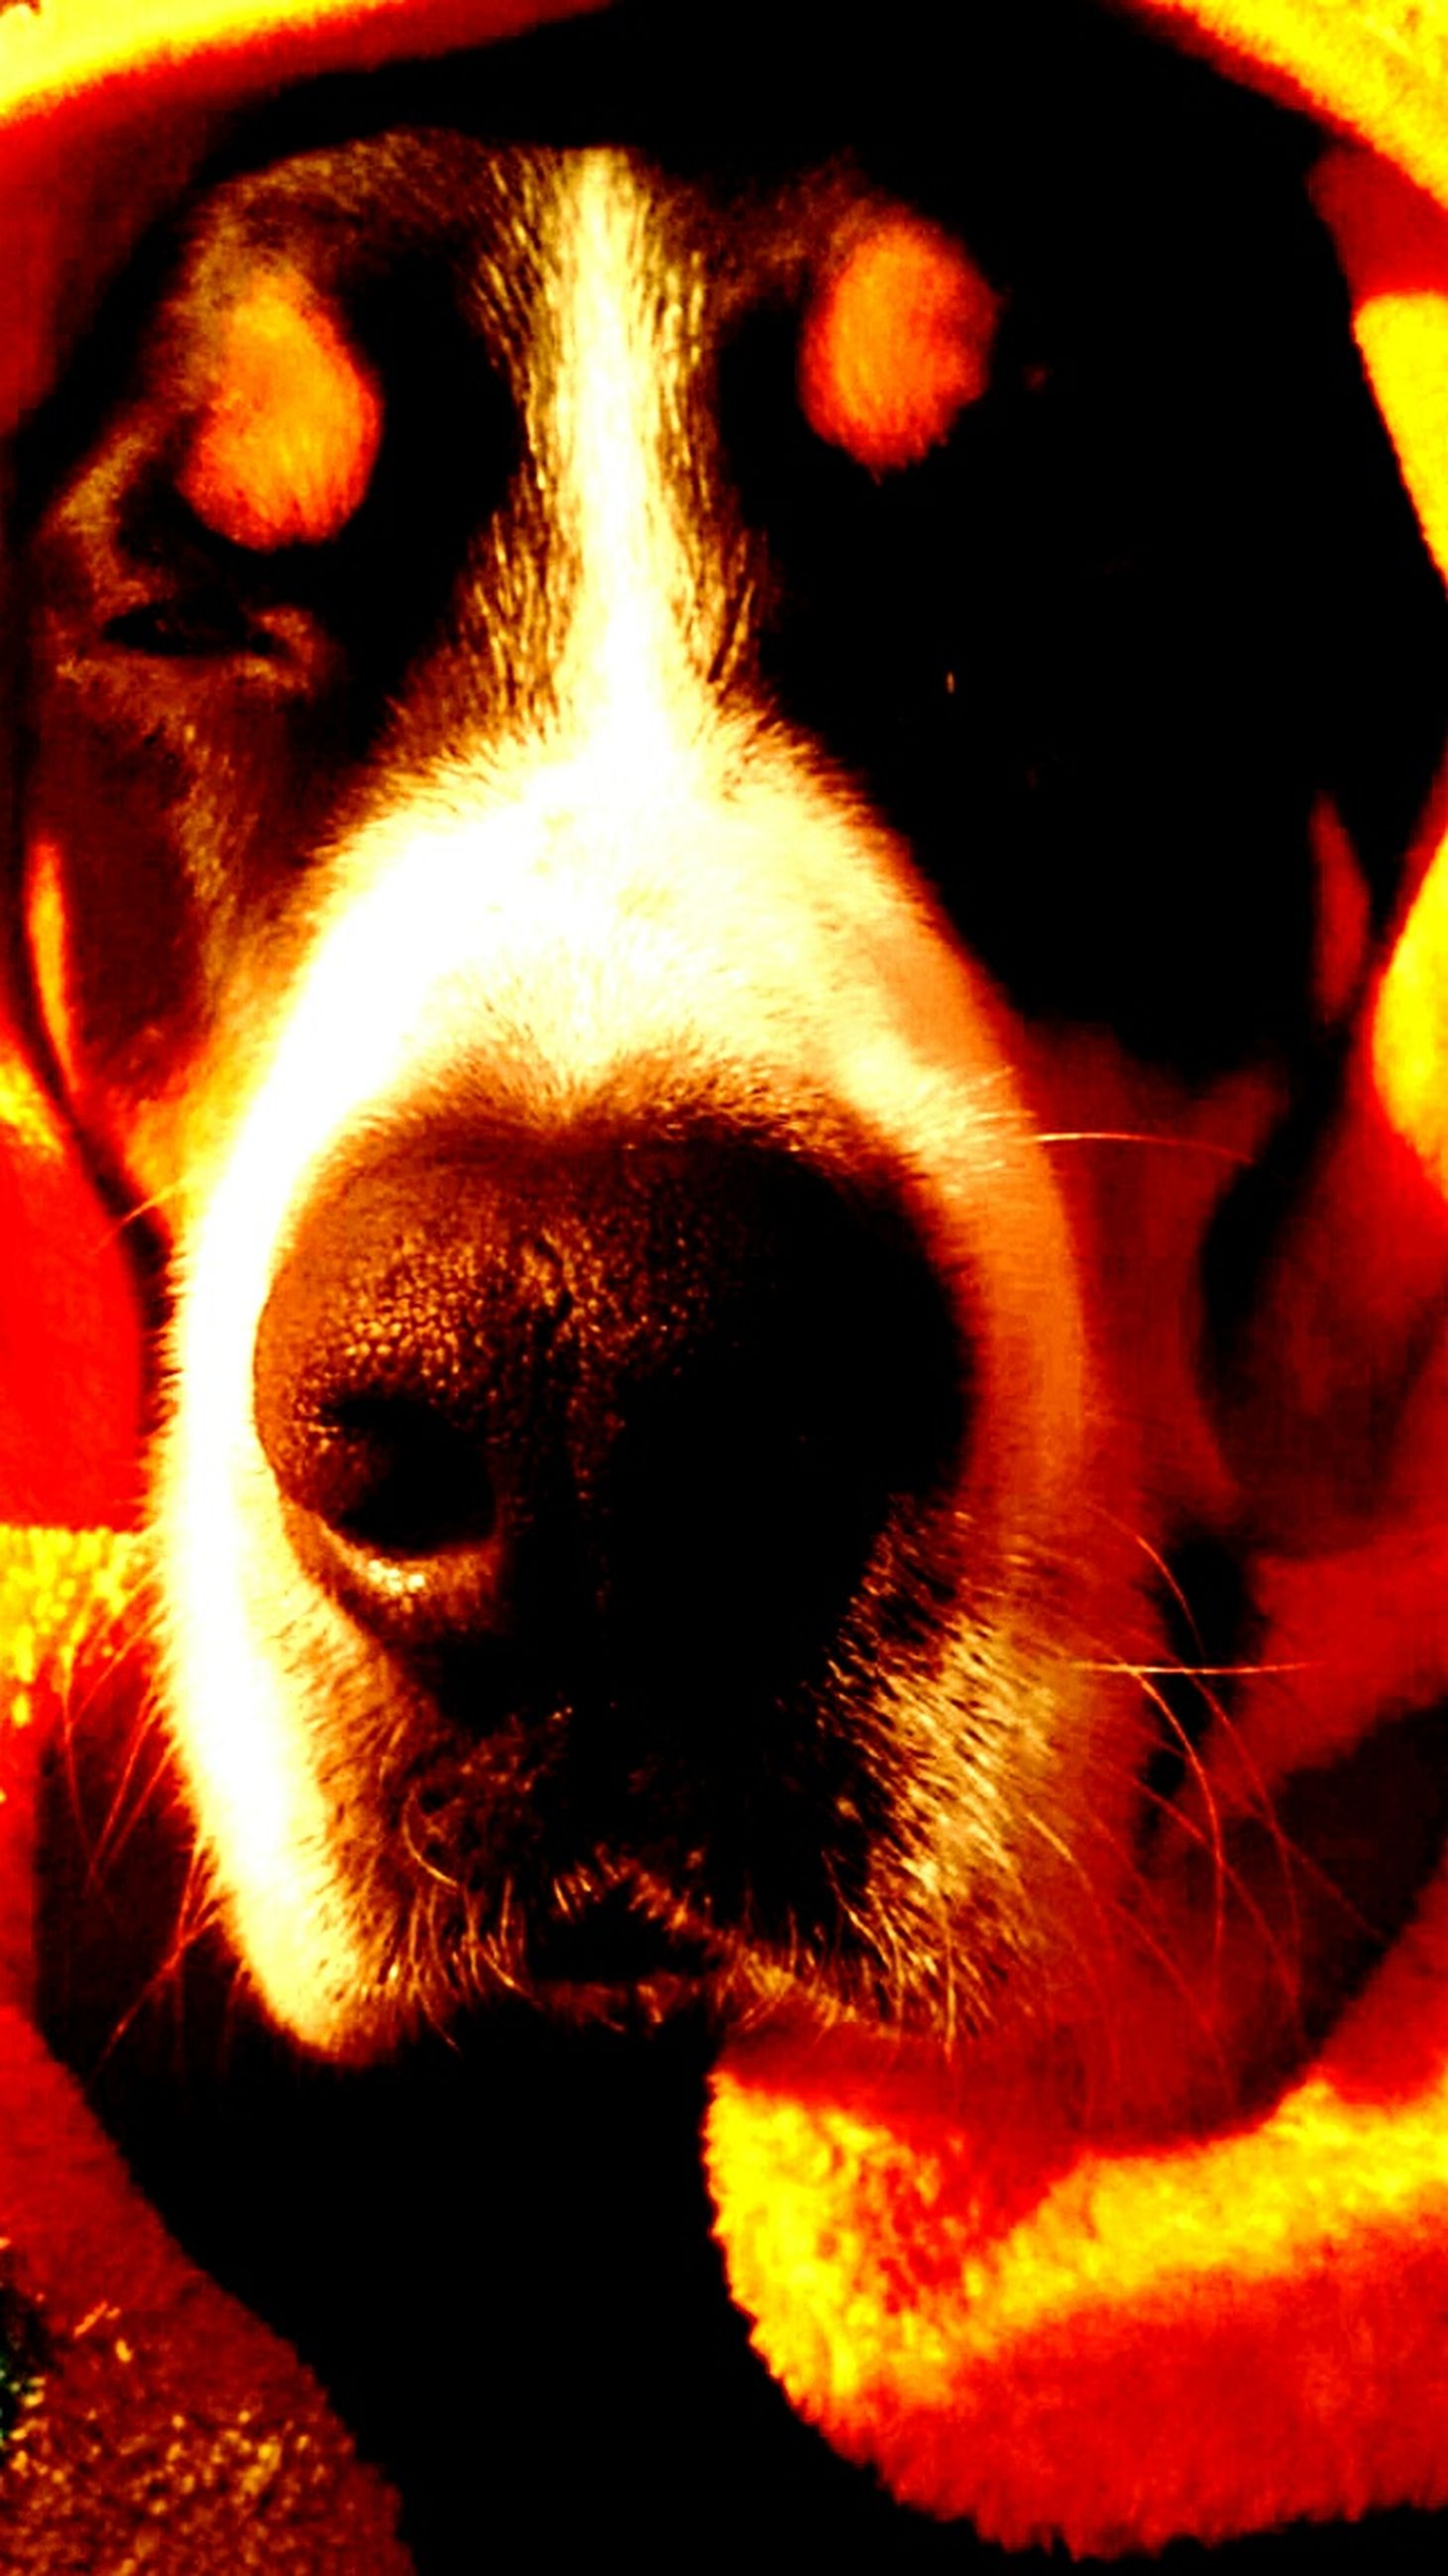 pets, one animal, domestic animals, animal themes, close-up, mammal, looking at camera, mouth open, no people, portrait, heat - temperature, dog, outdoors, day